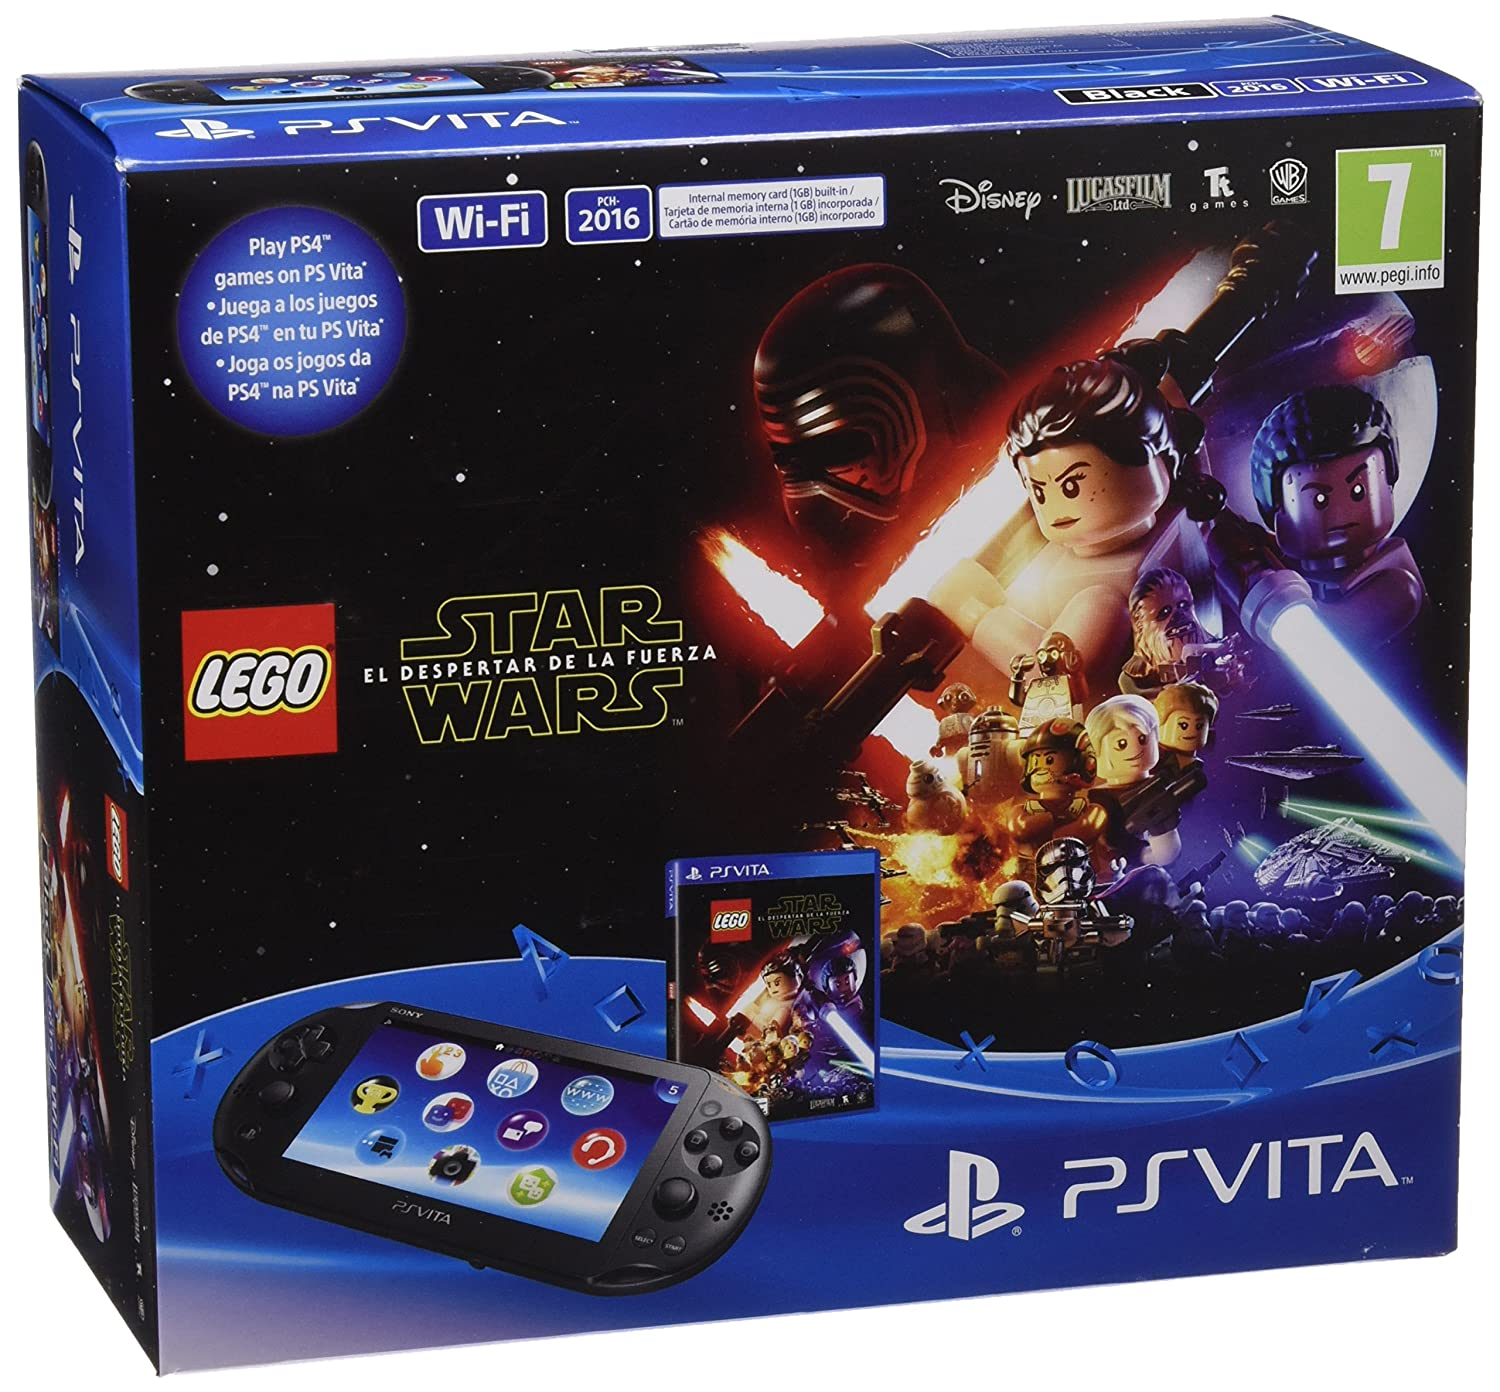 PlayStation Vita - Consola + LEGO Star Wars: Amazon.es ...